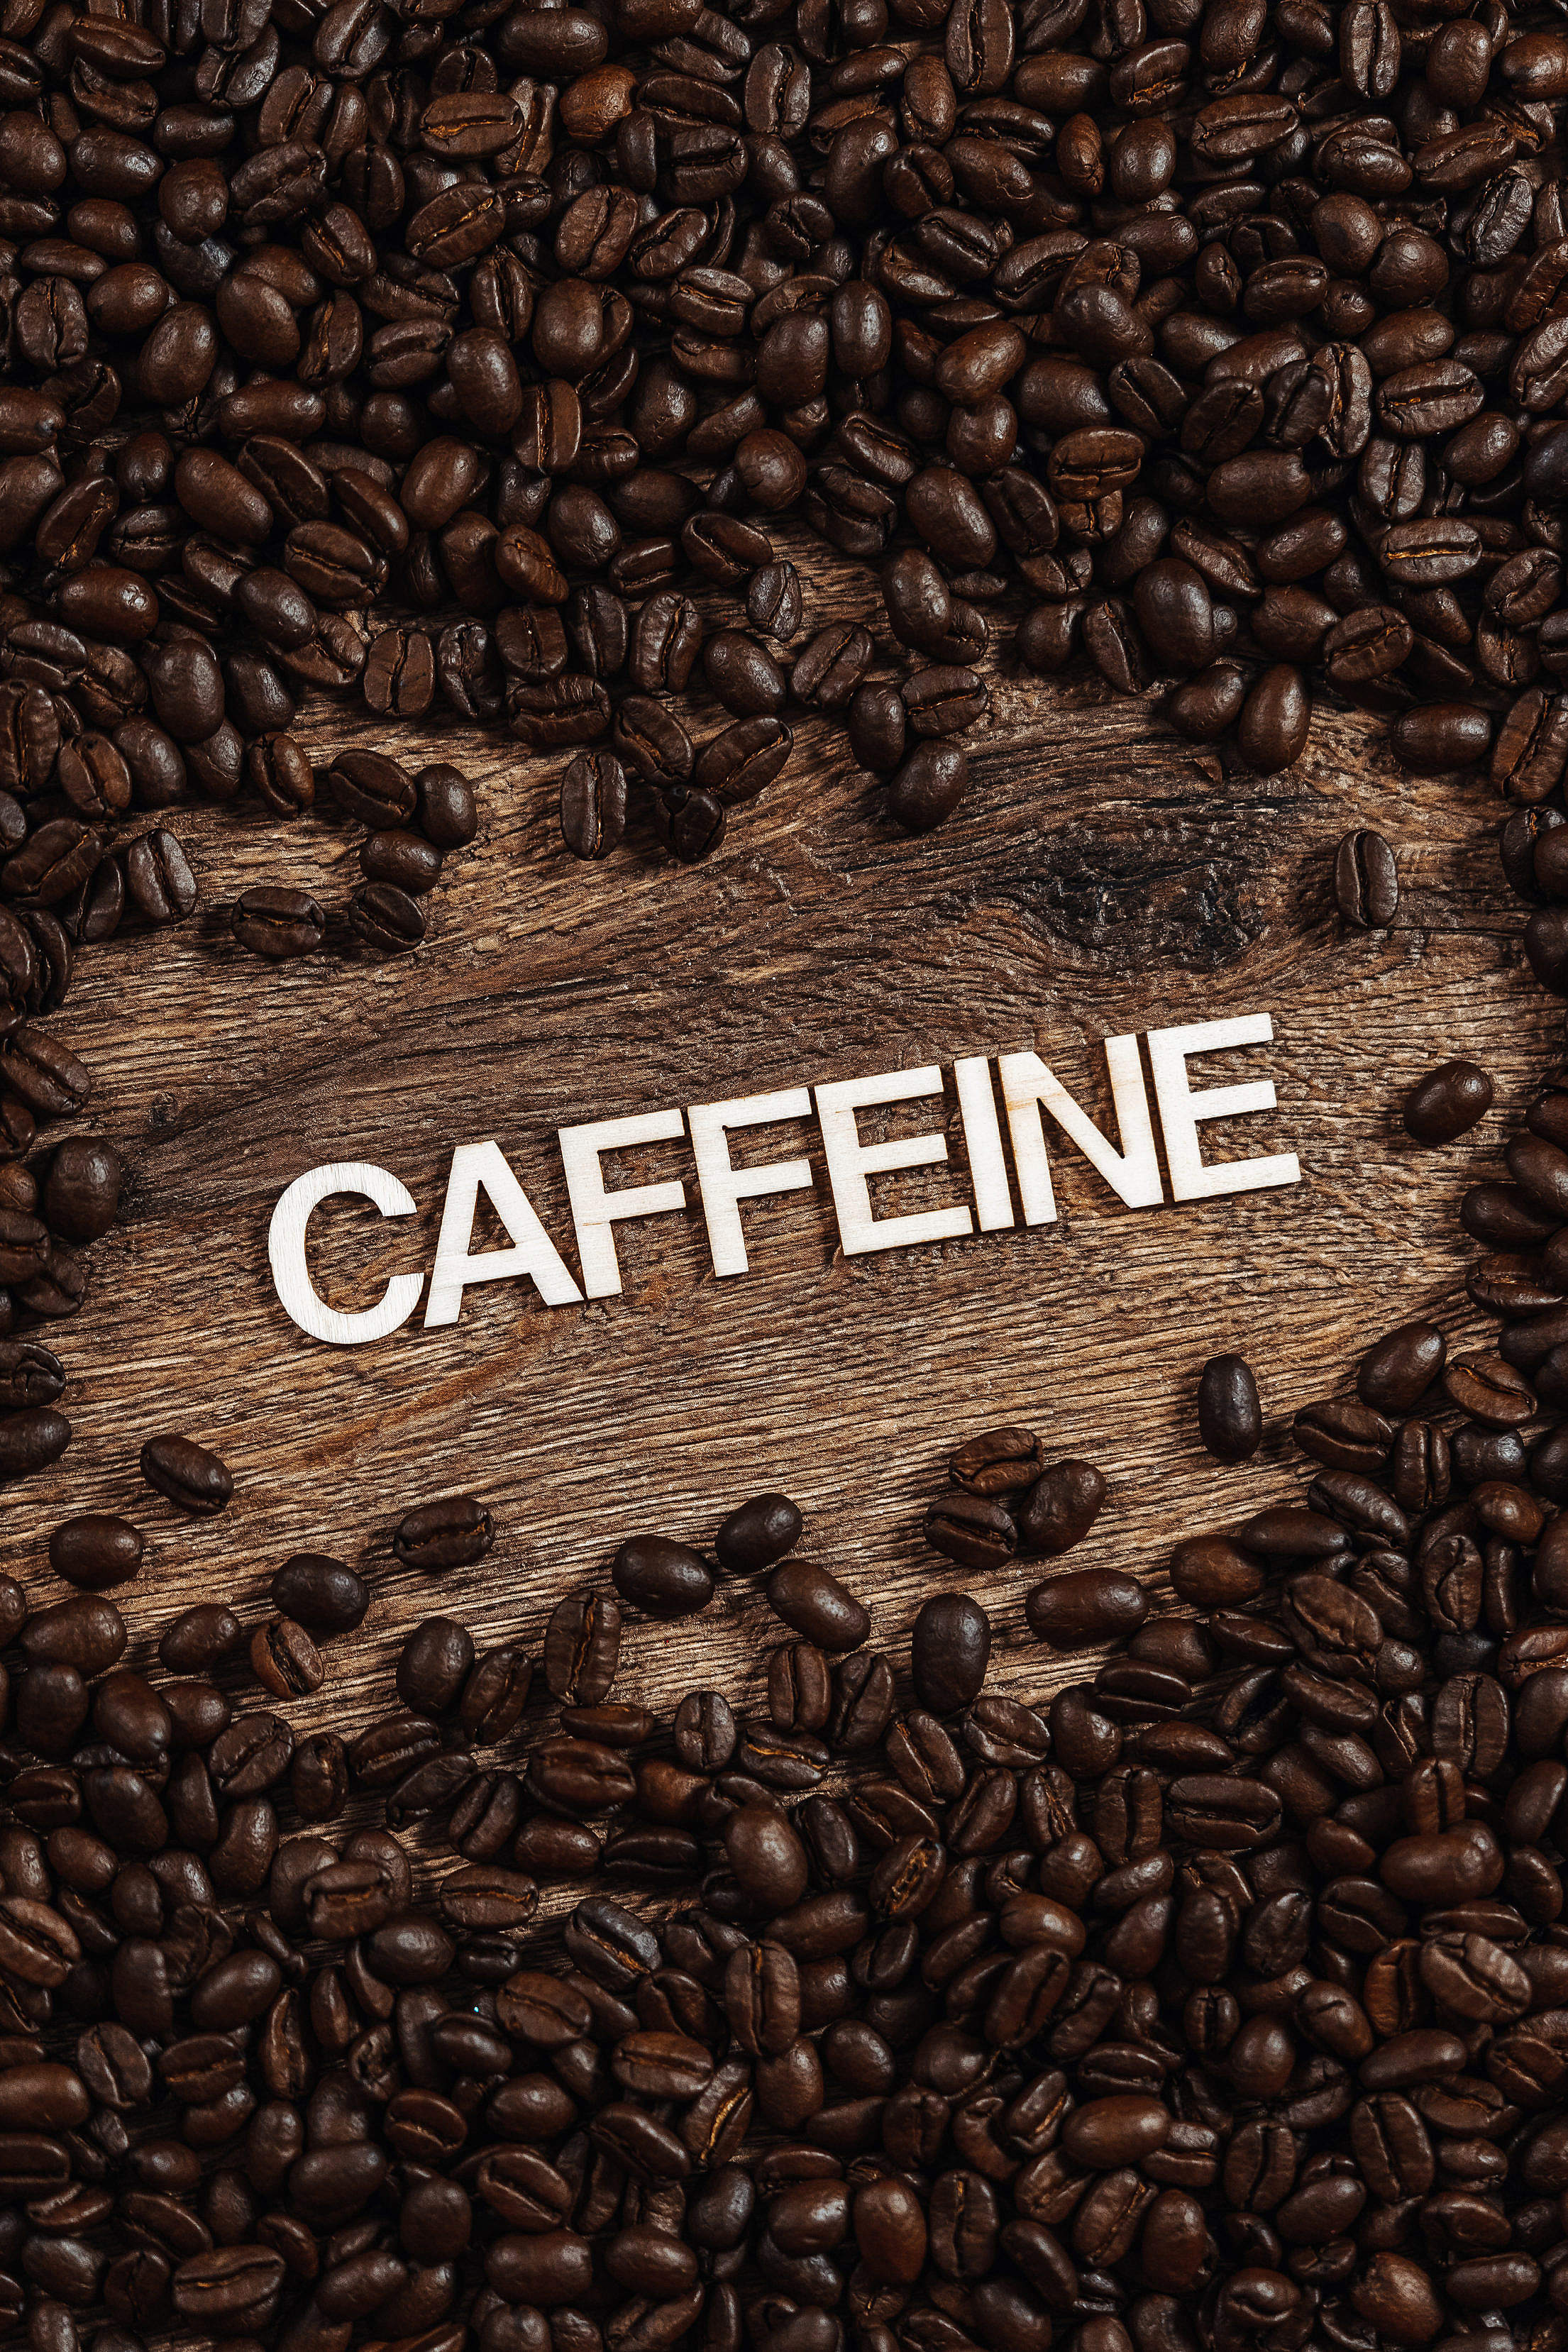 How Much Cаffeine Is In a Coffee Bean Free Stock Photo